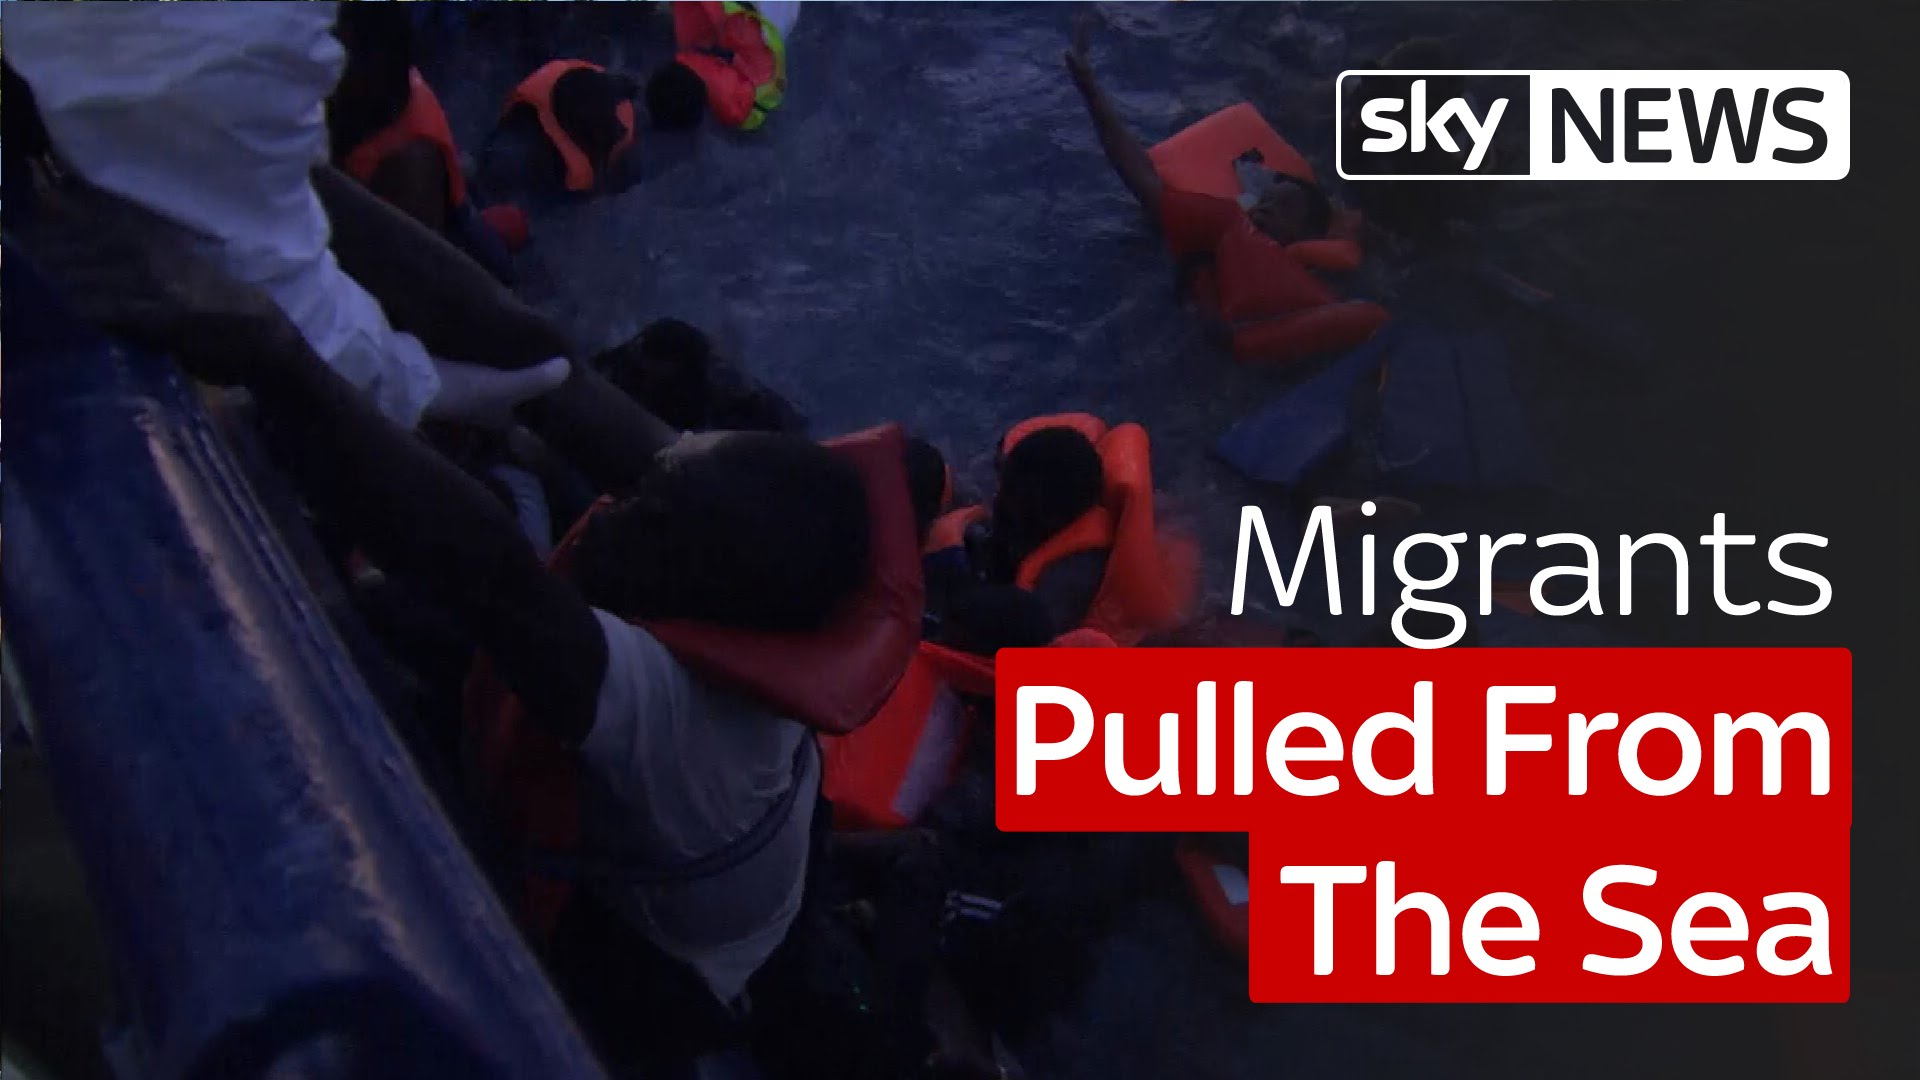 Migrants Pulled From The Sea 8